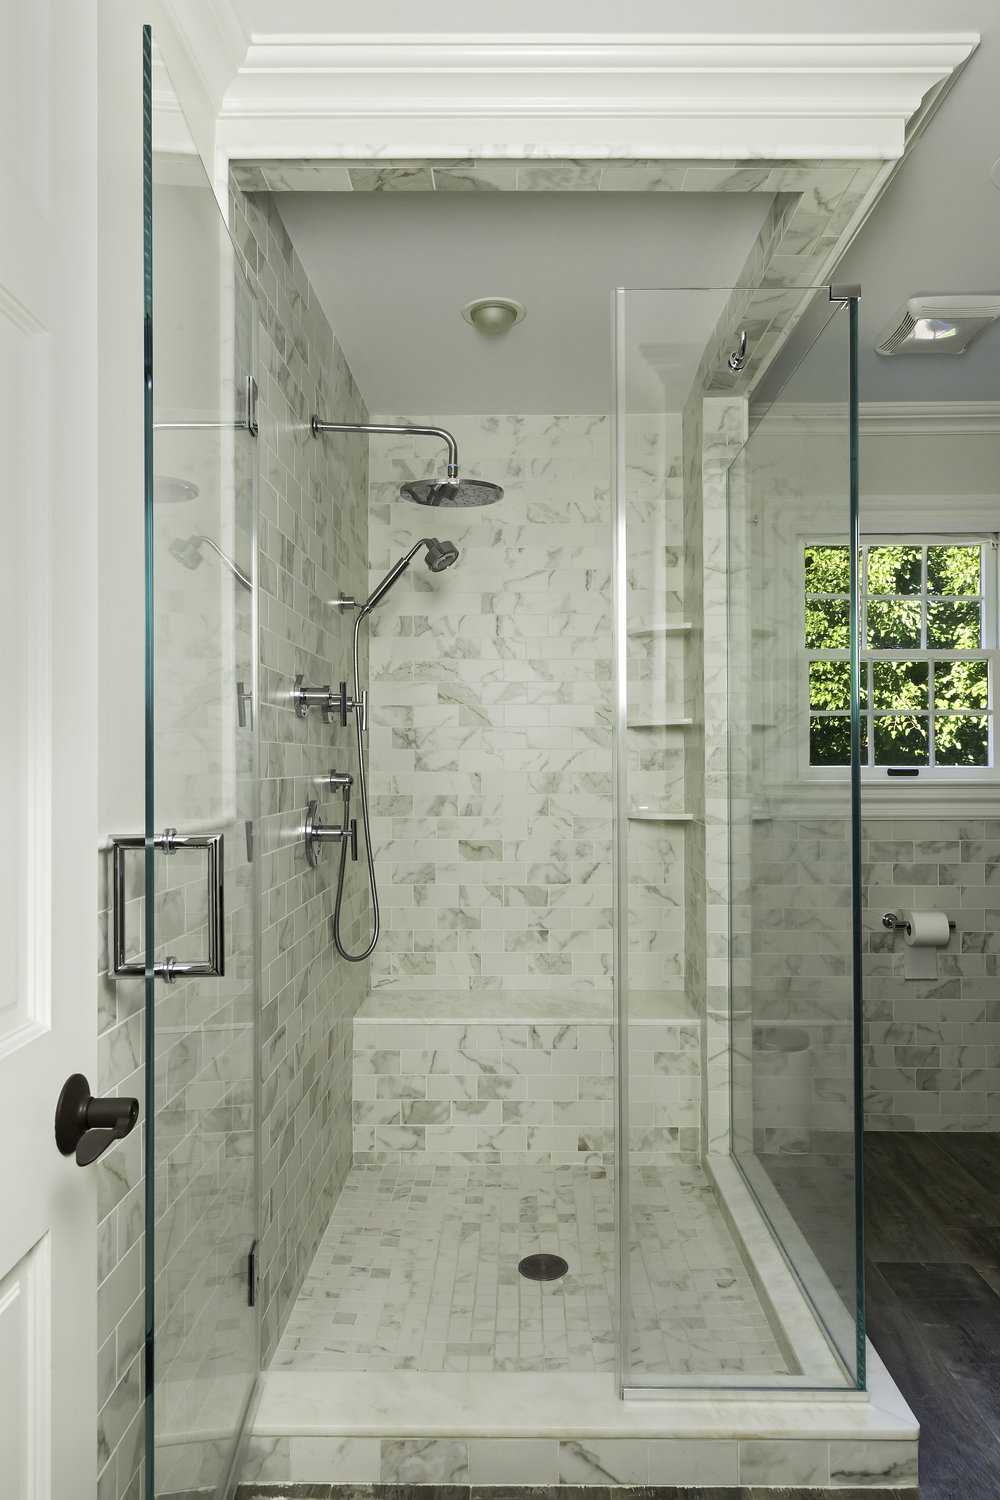 Glass walled shower with multiple shower heads and tiled wall